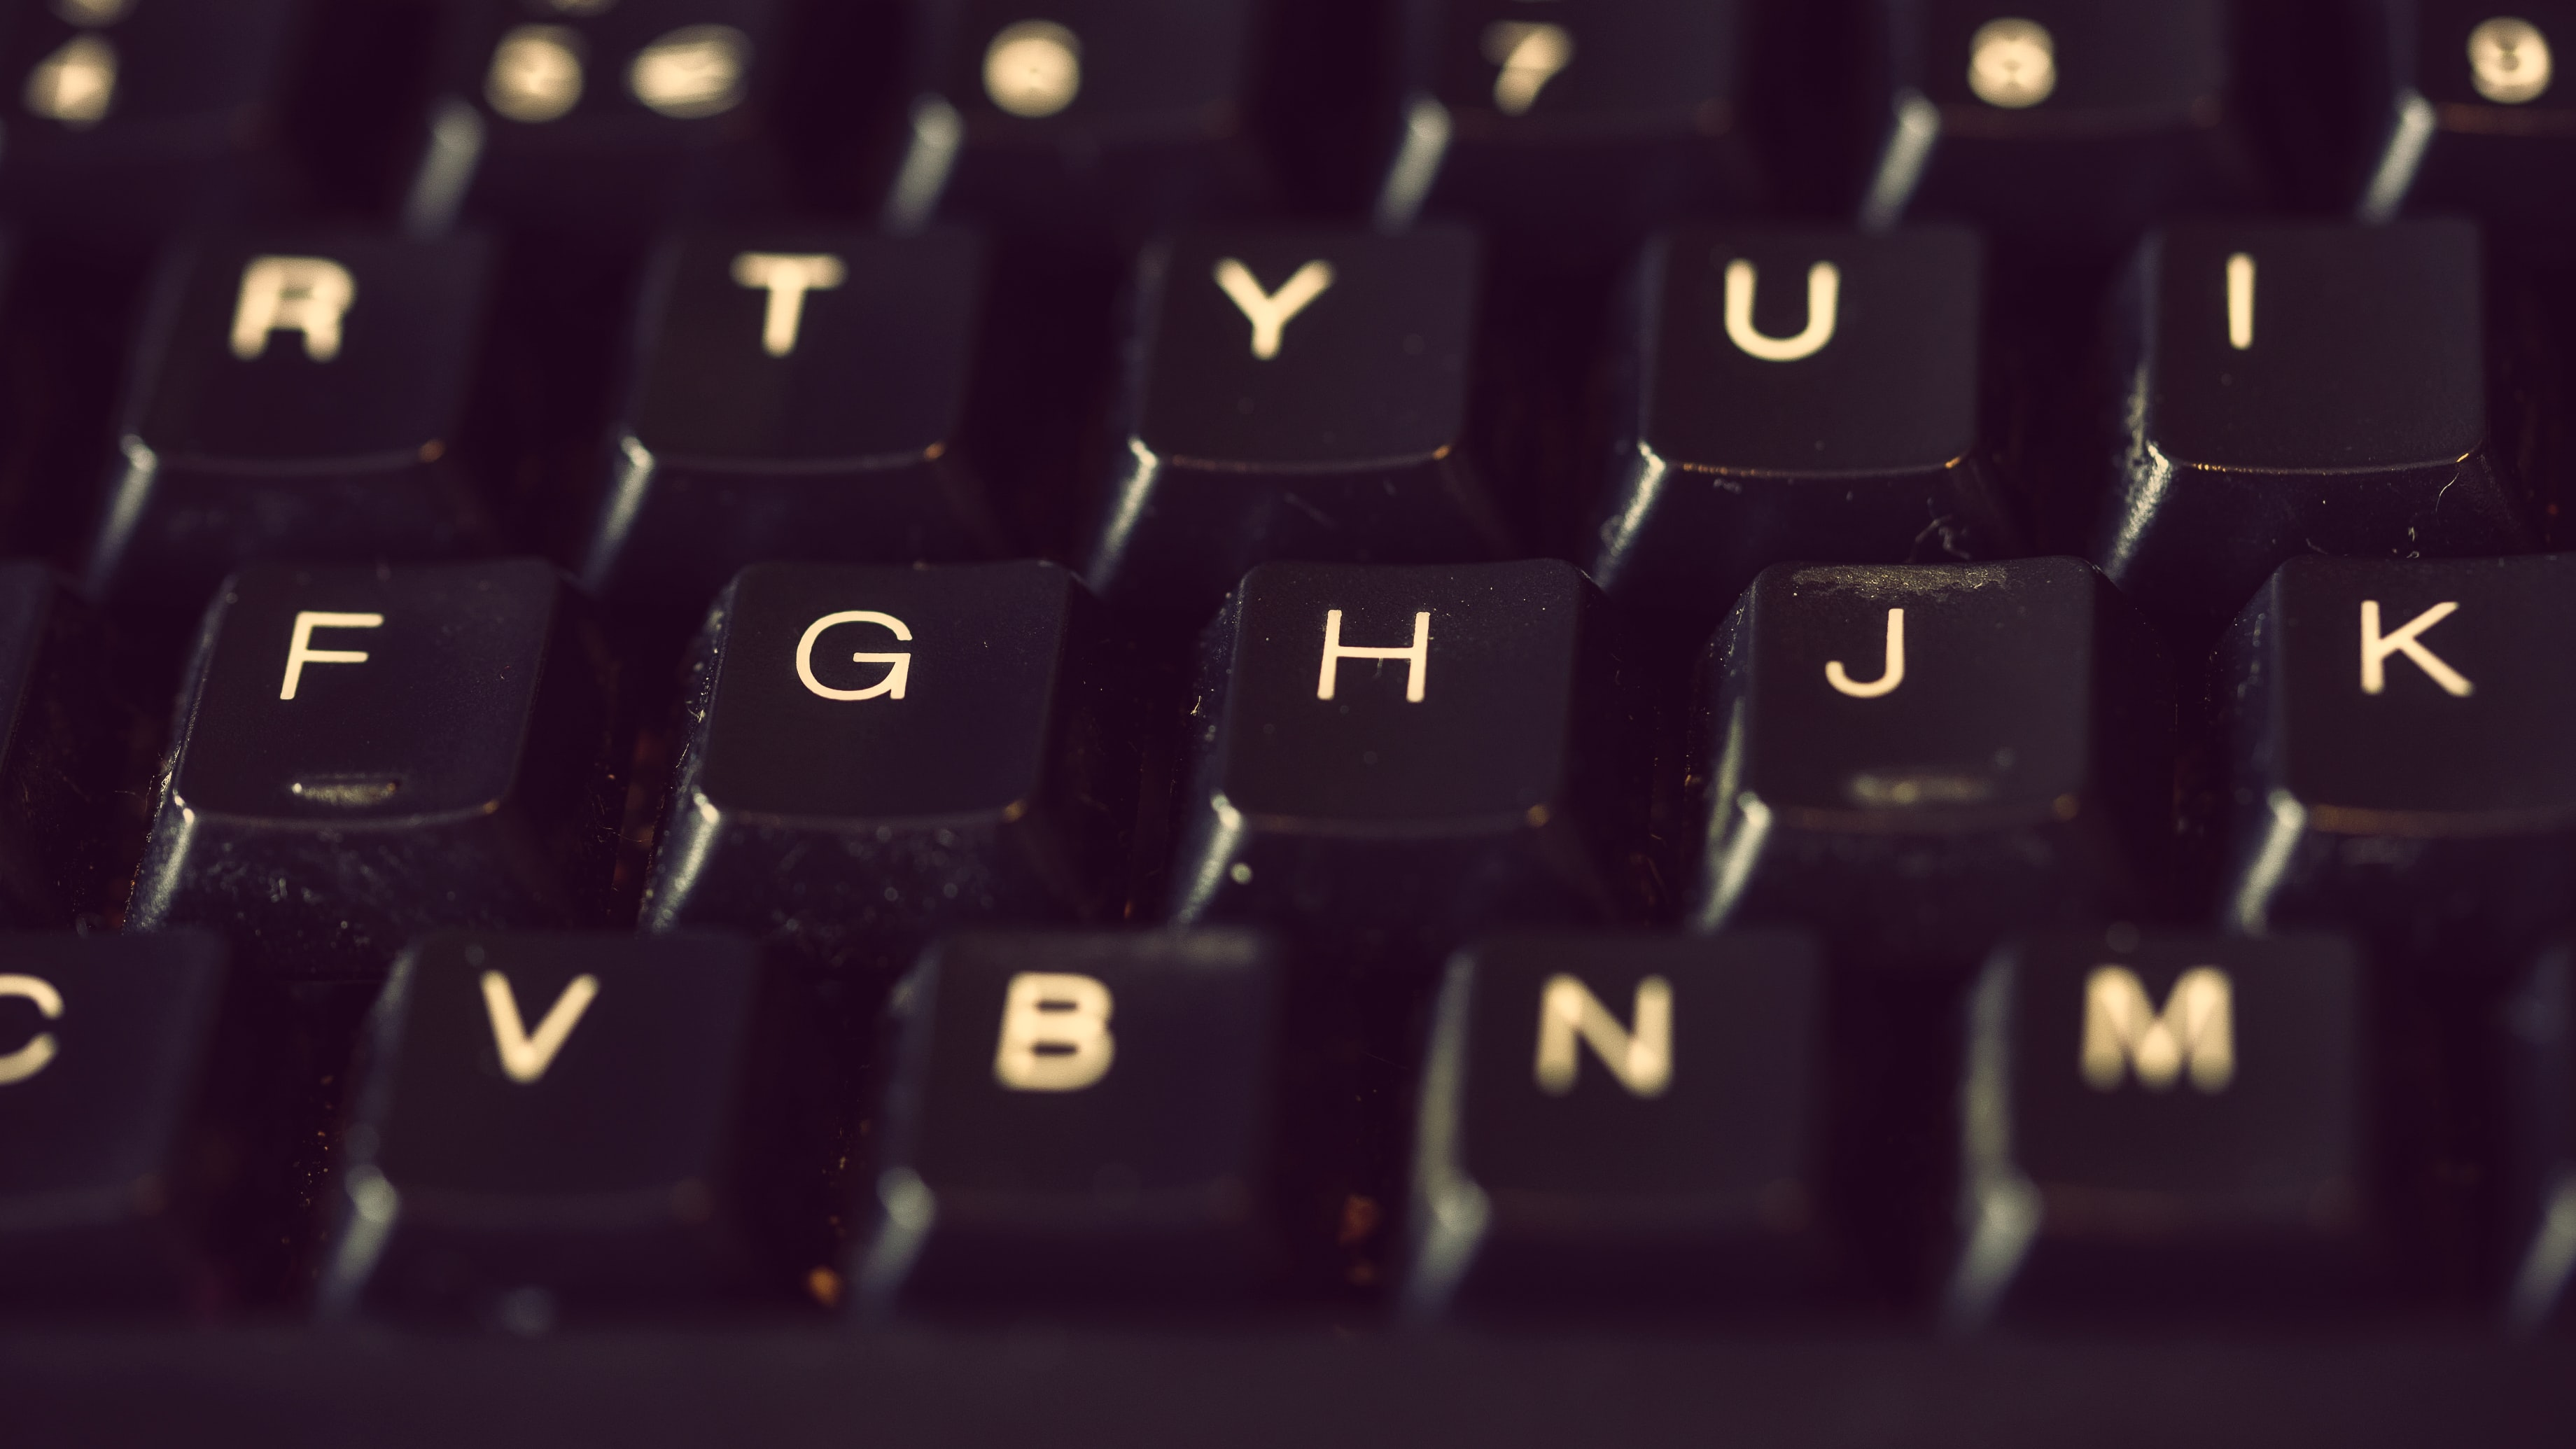 close-up photography of keyboard